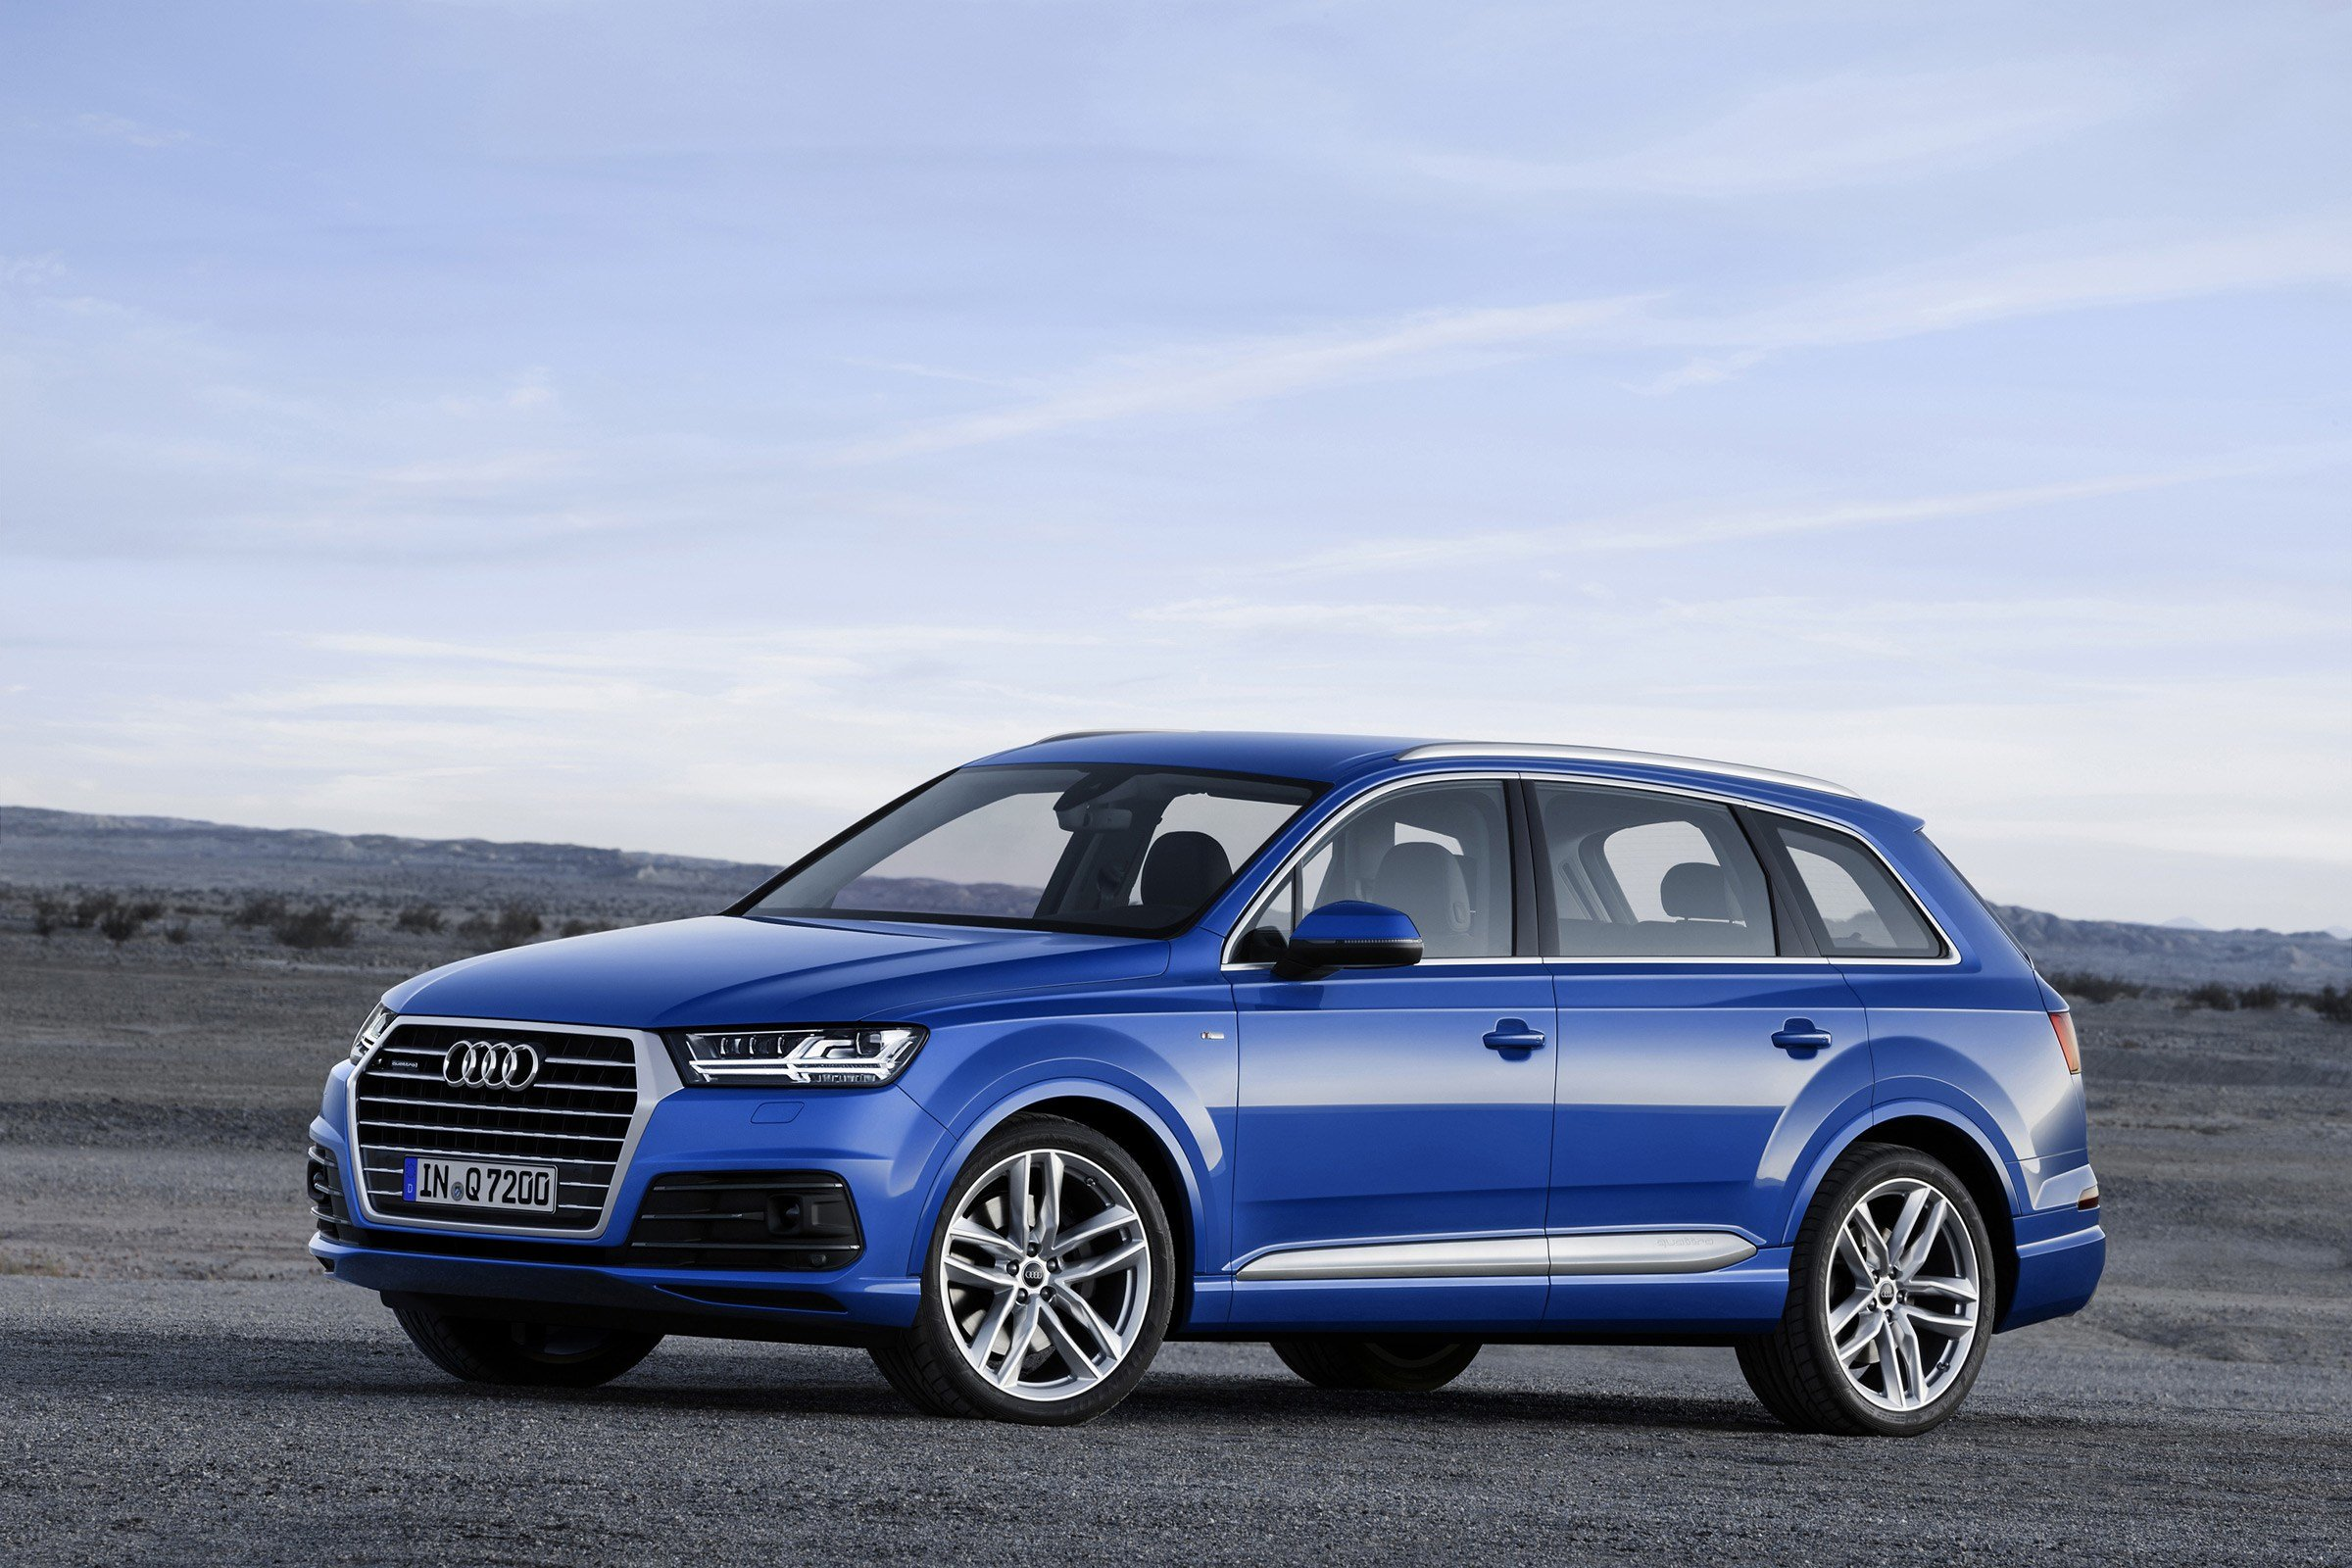 Latest New Audi Q7 Release Date Price And Specs Carbuyer Free Download